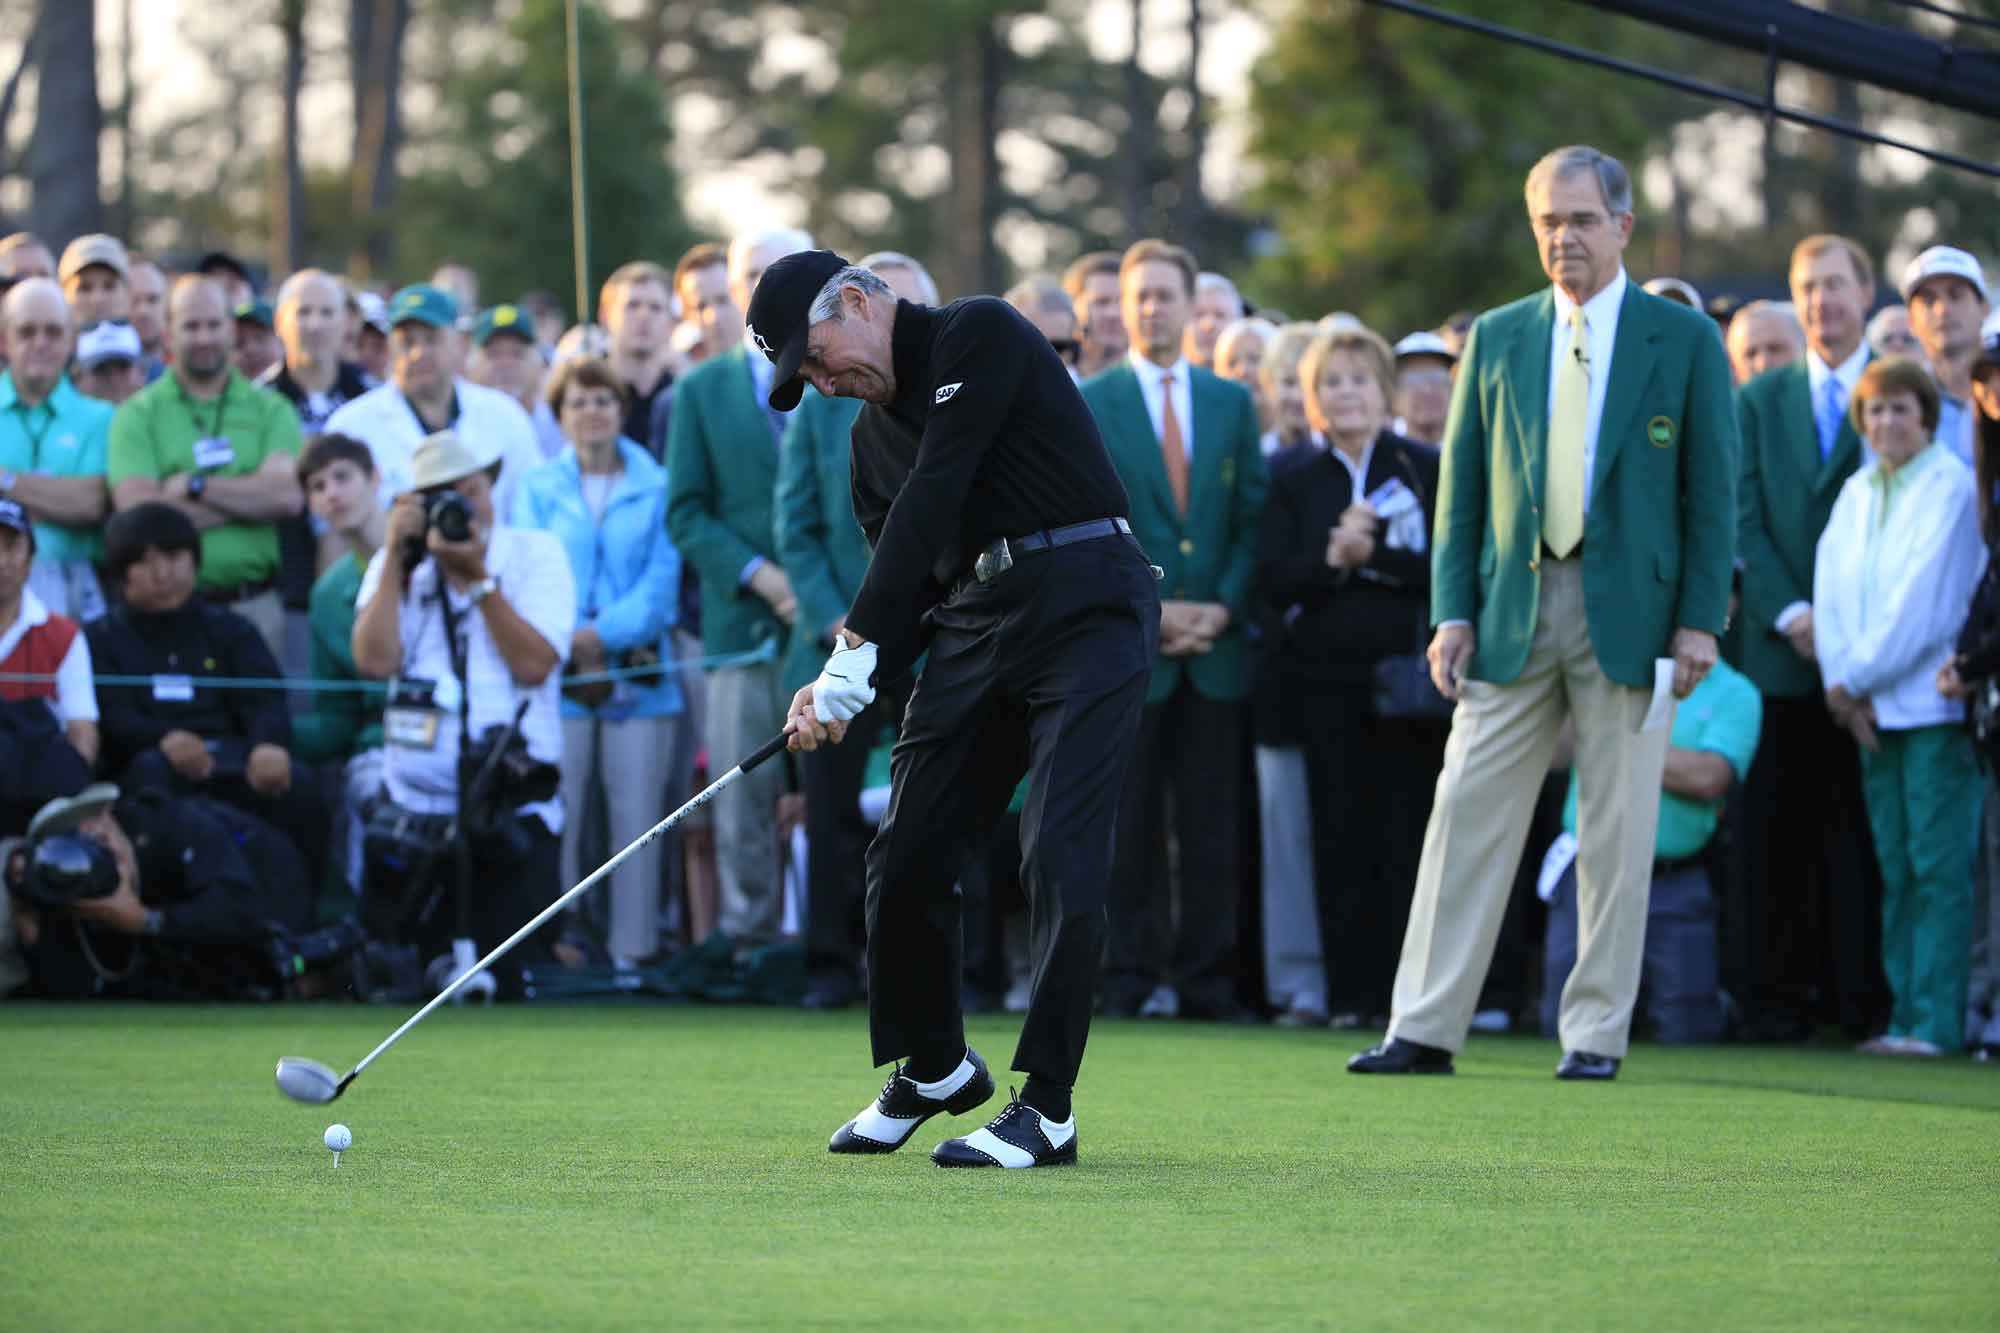 Gary Player hits the ceremonial first drive in one of golf's most prestigious roles, Honorary Starter at The Masters